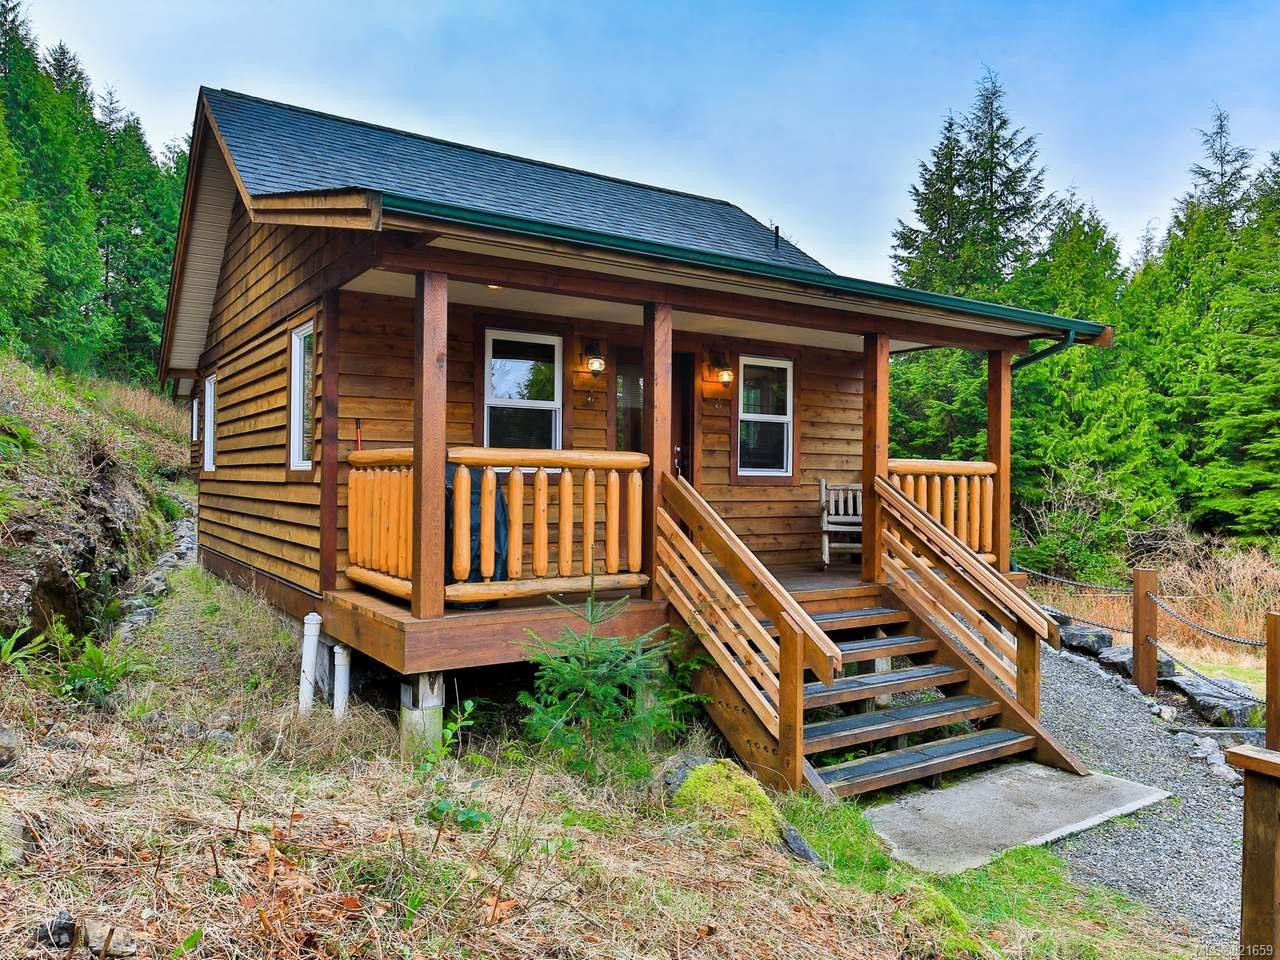 Photo 59: Photos: 1049 Helen Rd in UCLUELET: PA Ucluelet House for sale (Port Alberni)  : MLS®# 821659